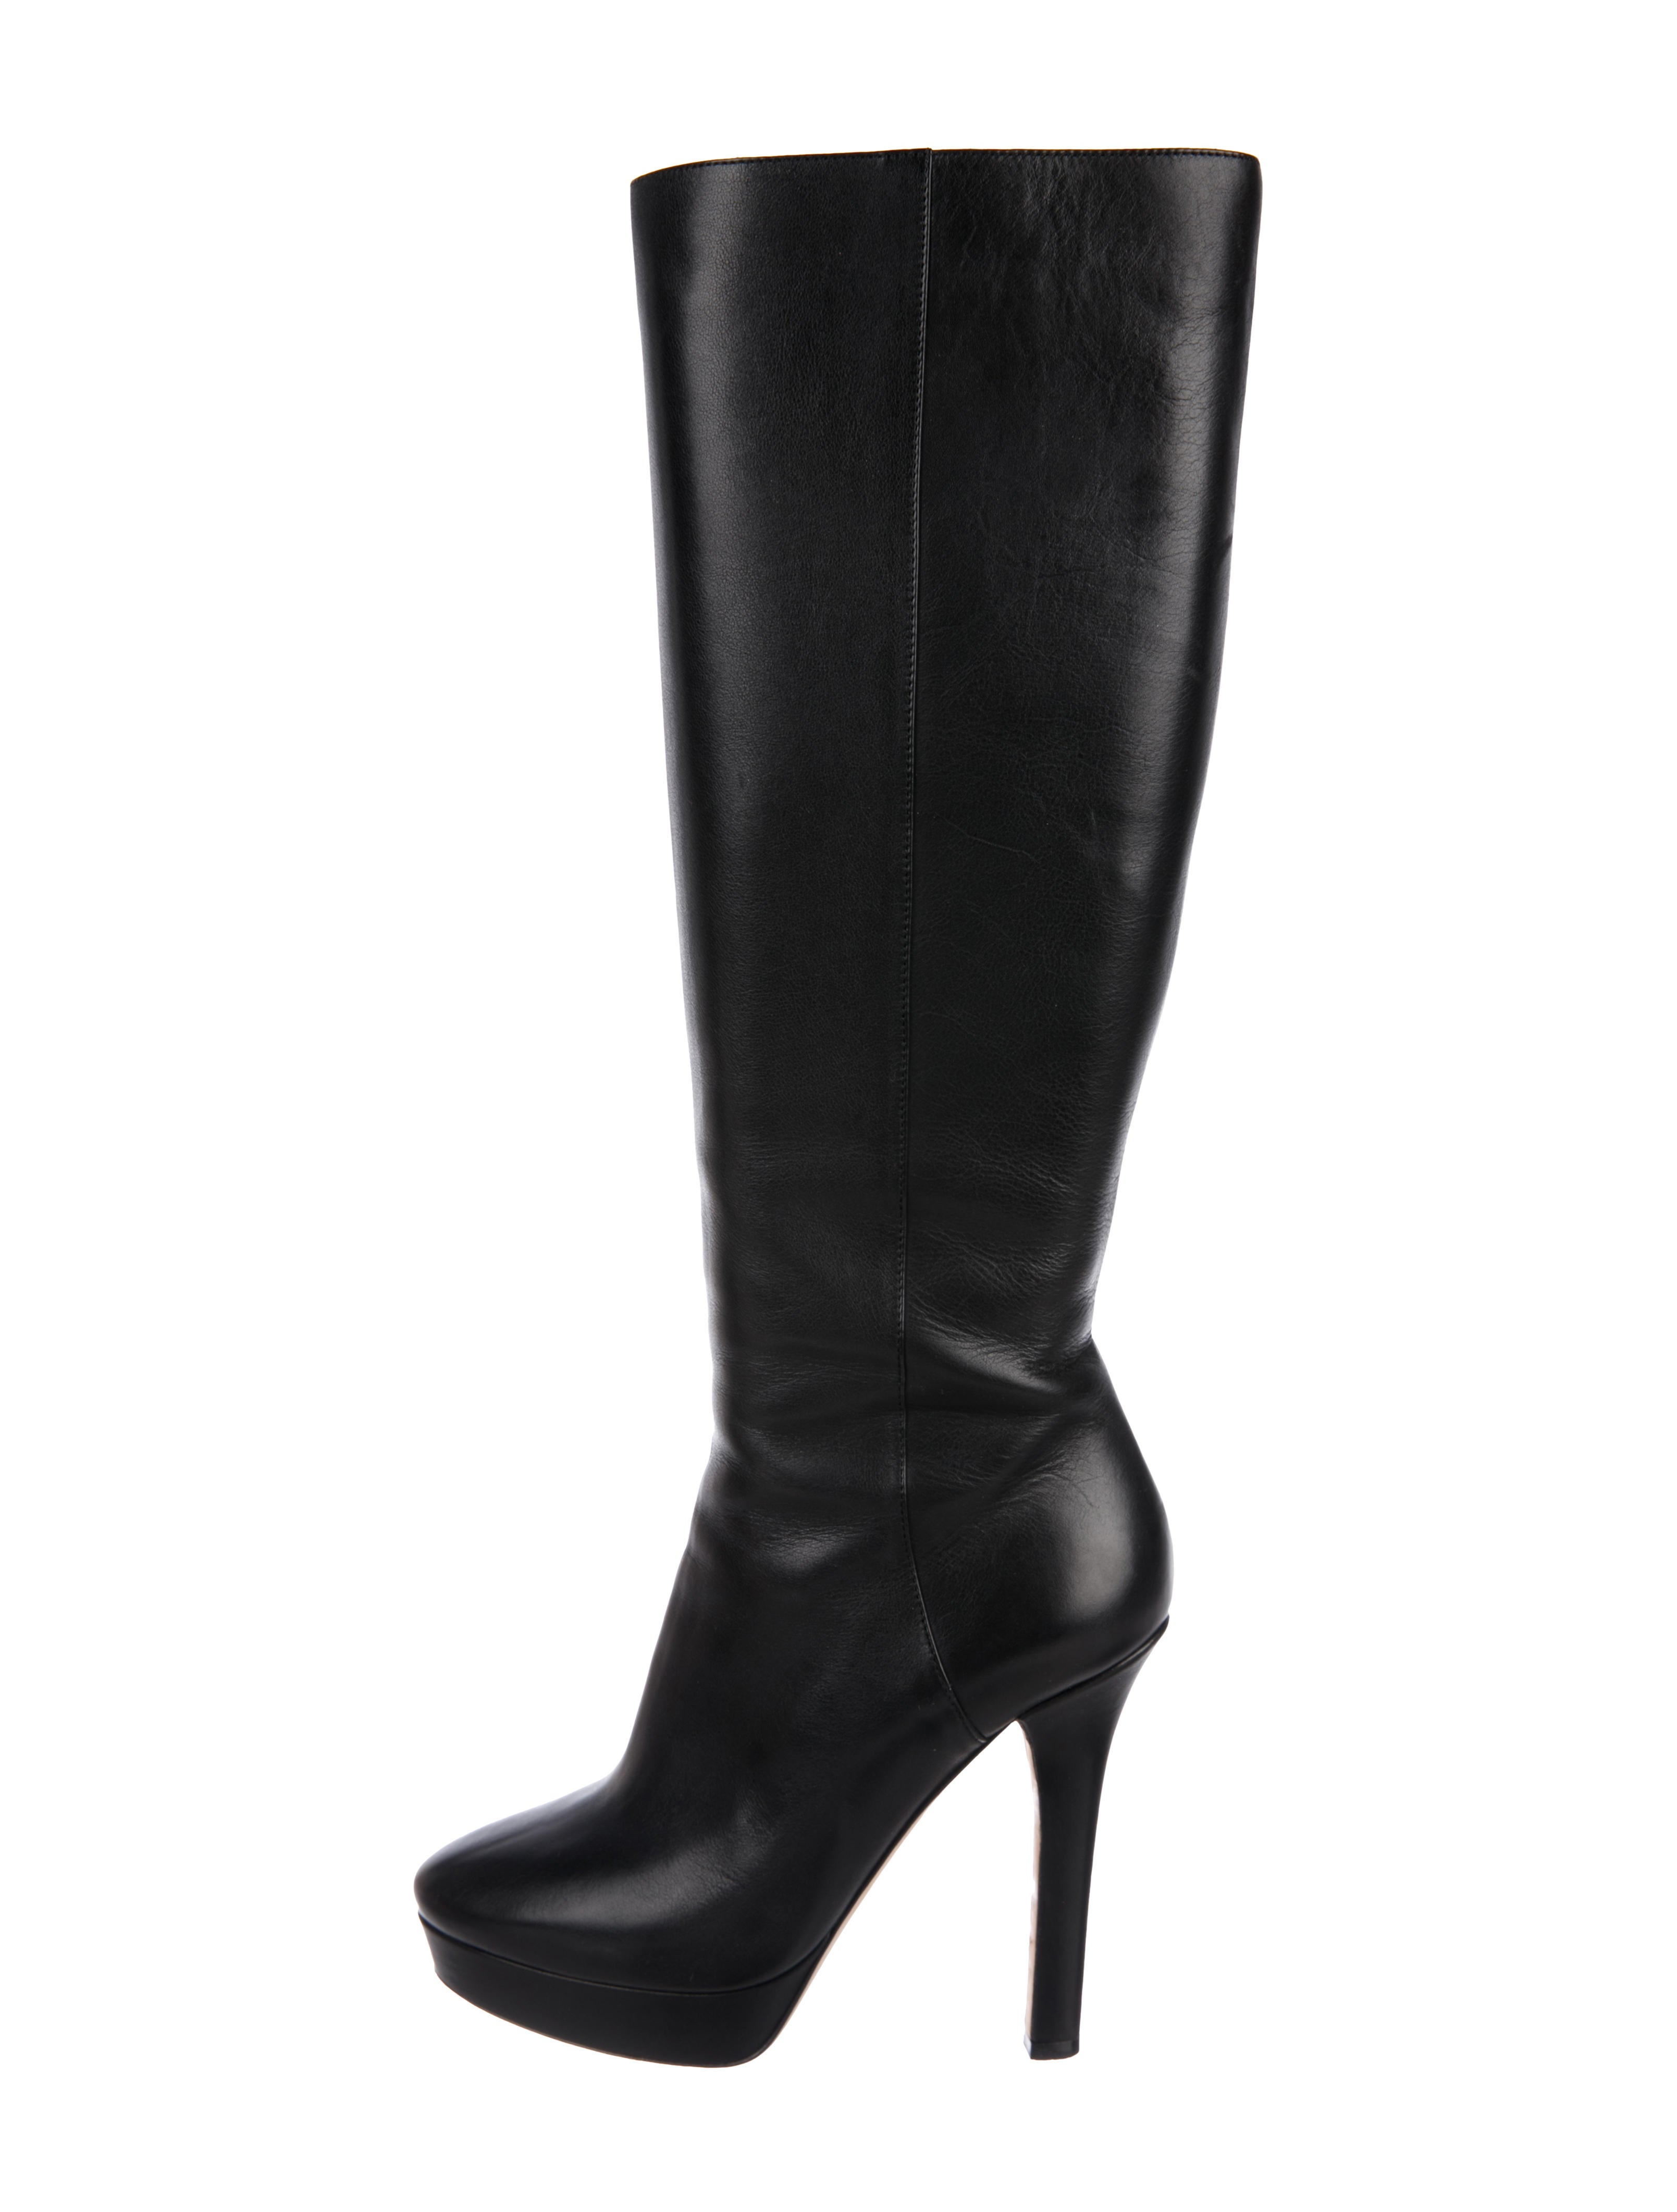 6fb28590fca Jimmy Choo Leather Knee-High Boots - Shoes - JIM118022